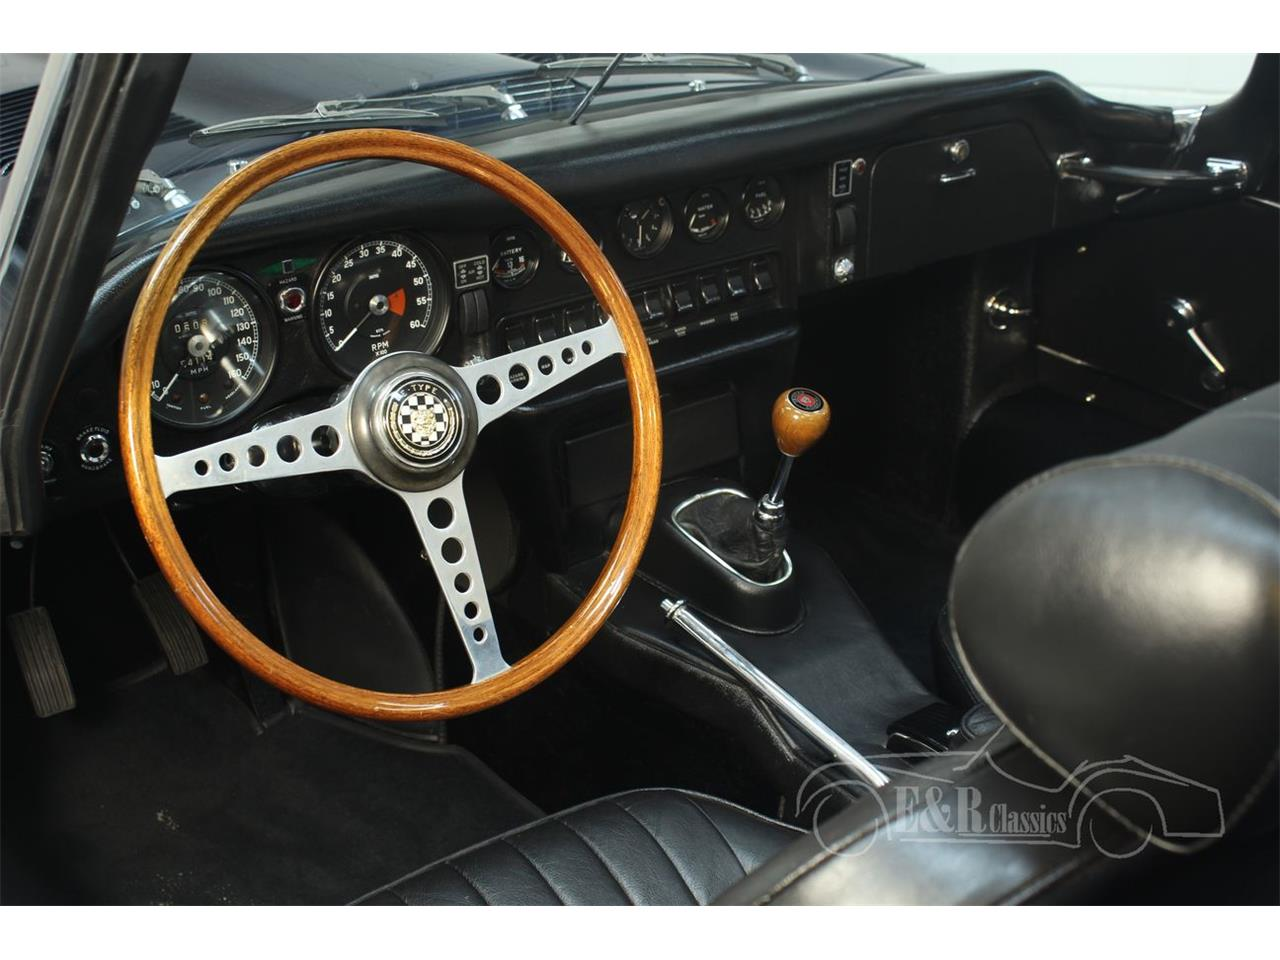 Large Picture of Classic '69 Jaguar E-Type - $139,400.00 Offered by E & R Classics - Q45K